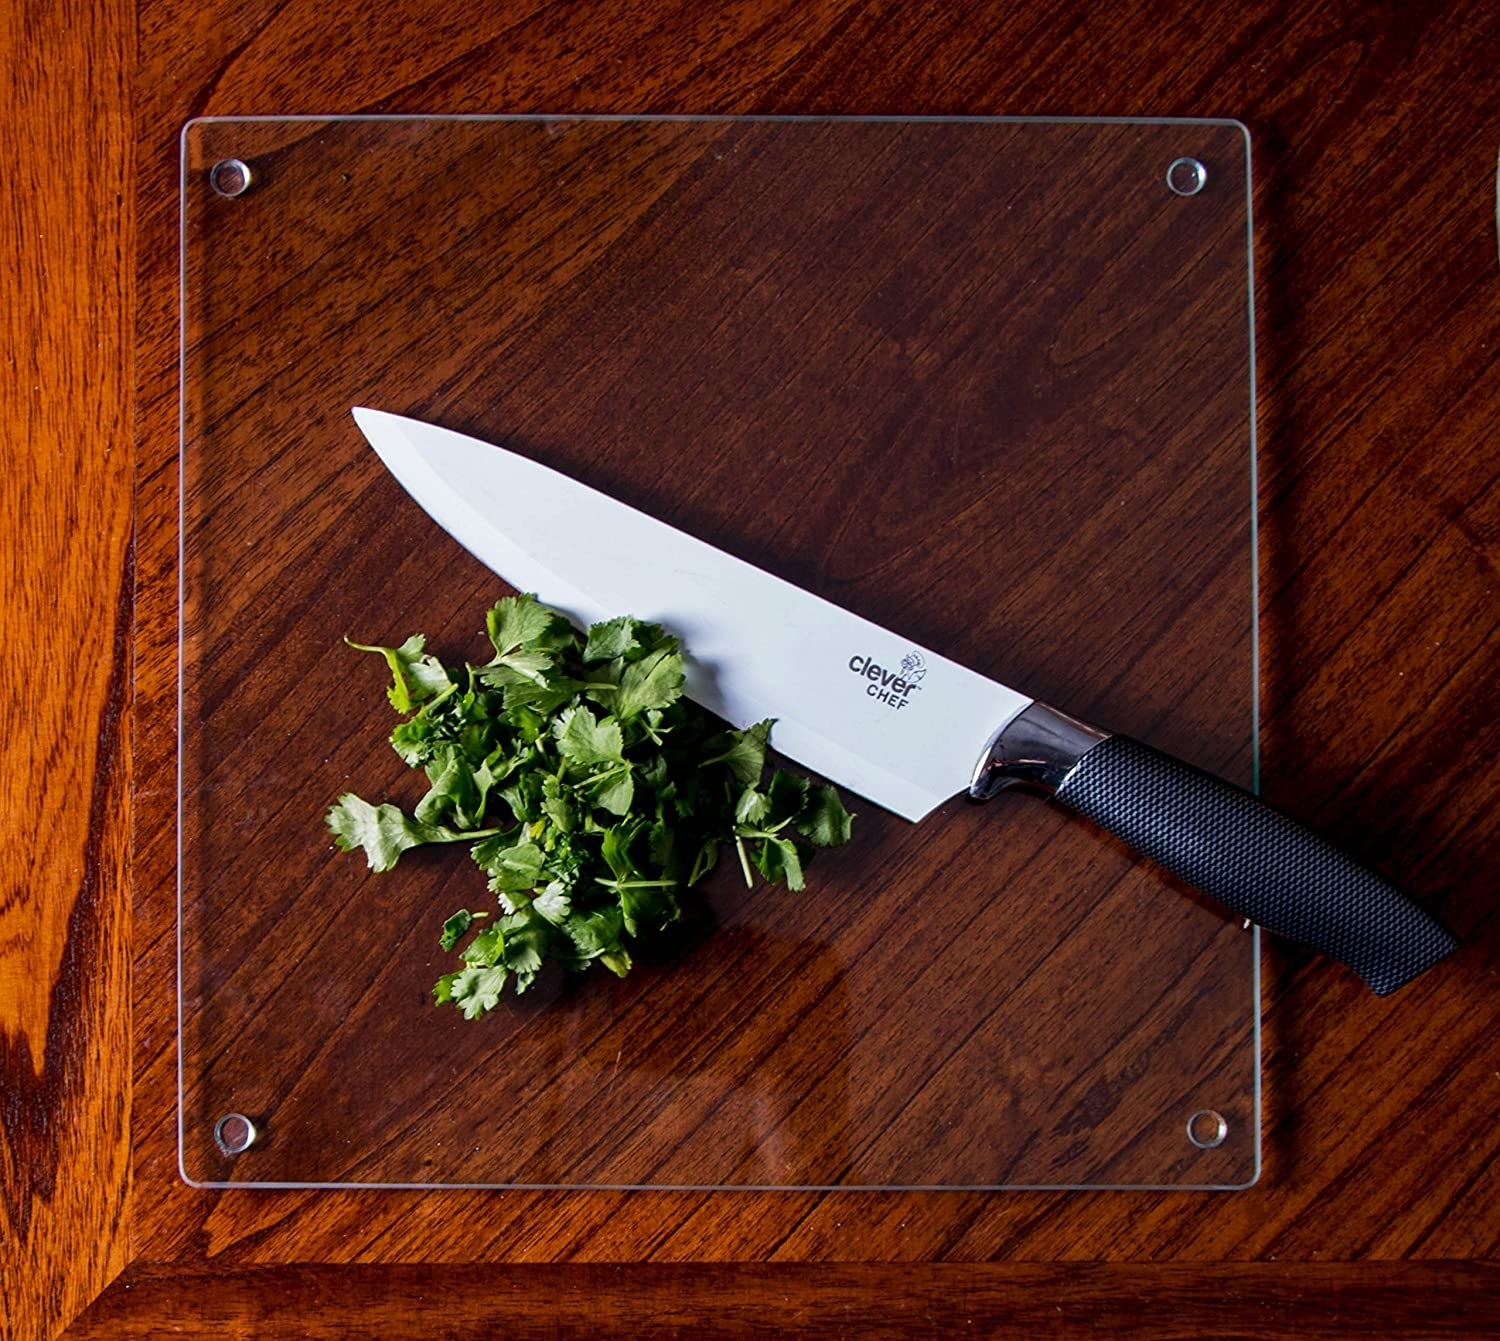 A glass cutting board on a countertop